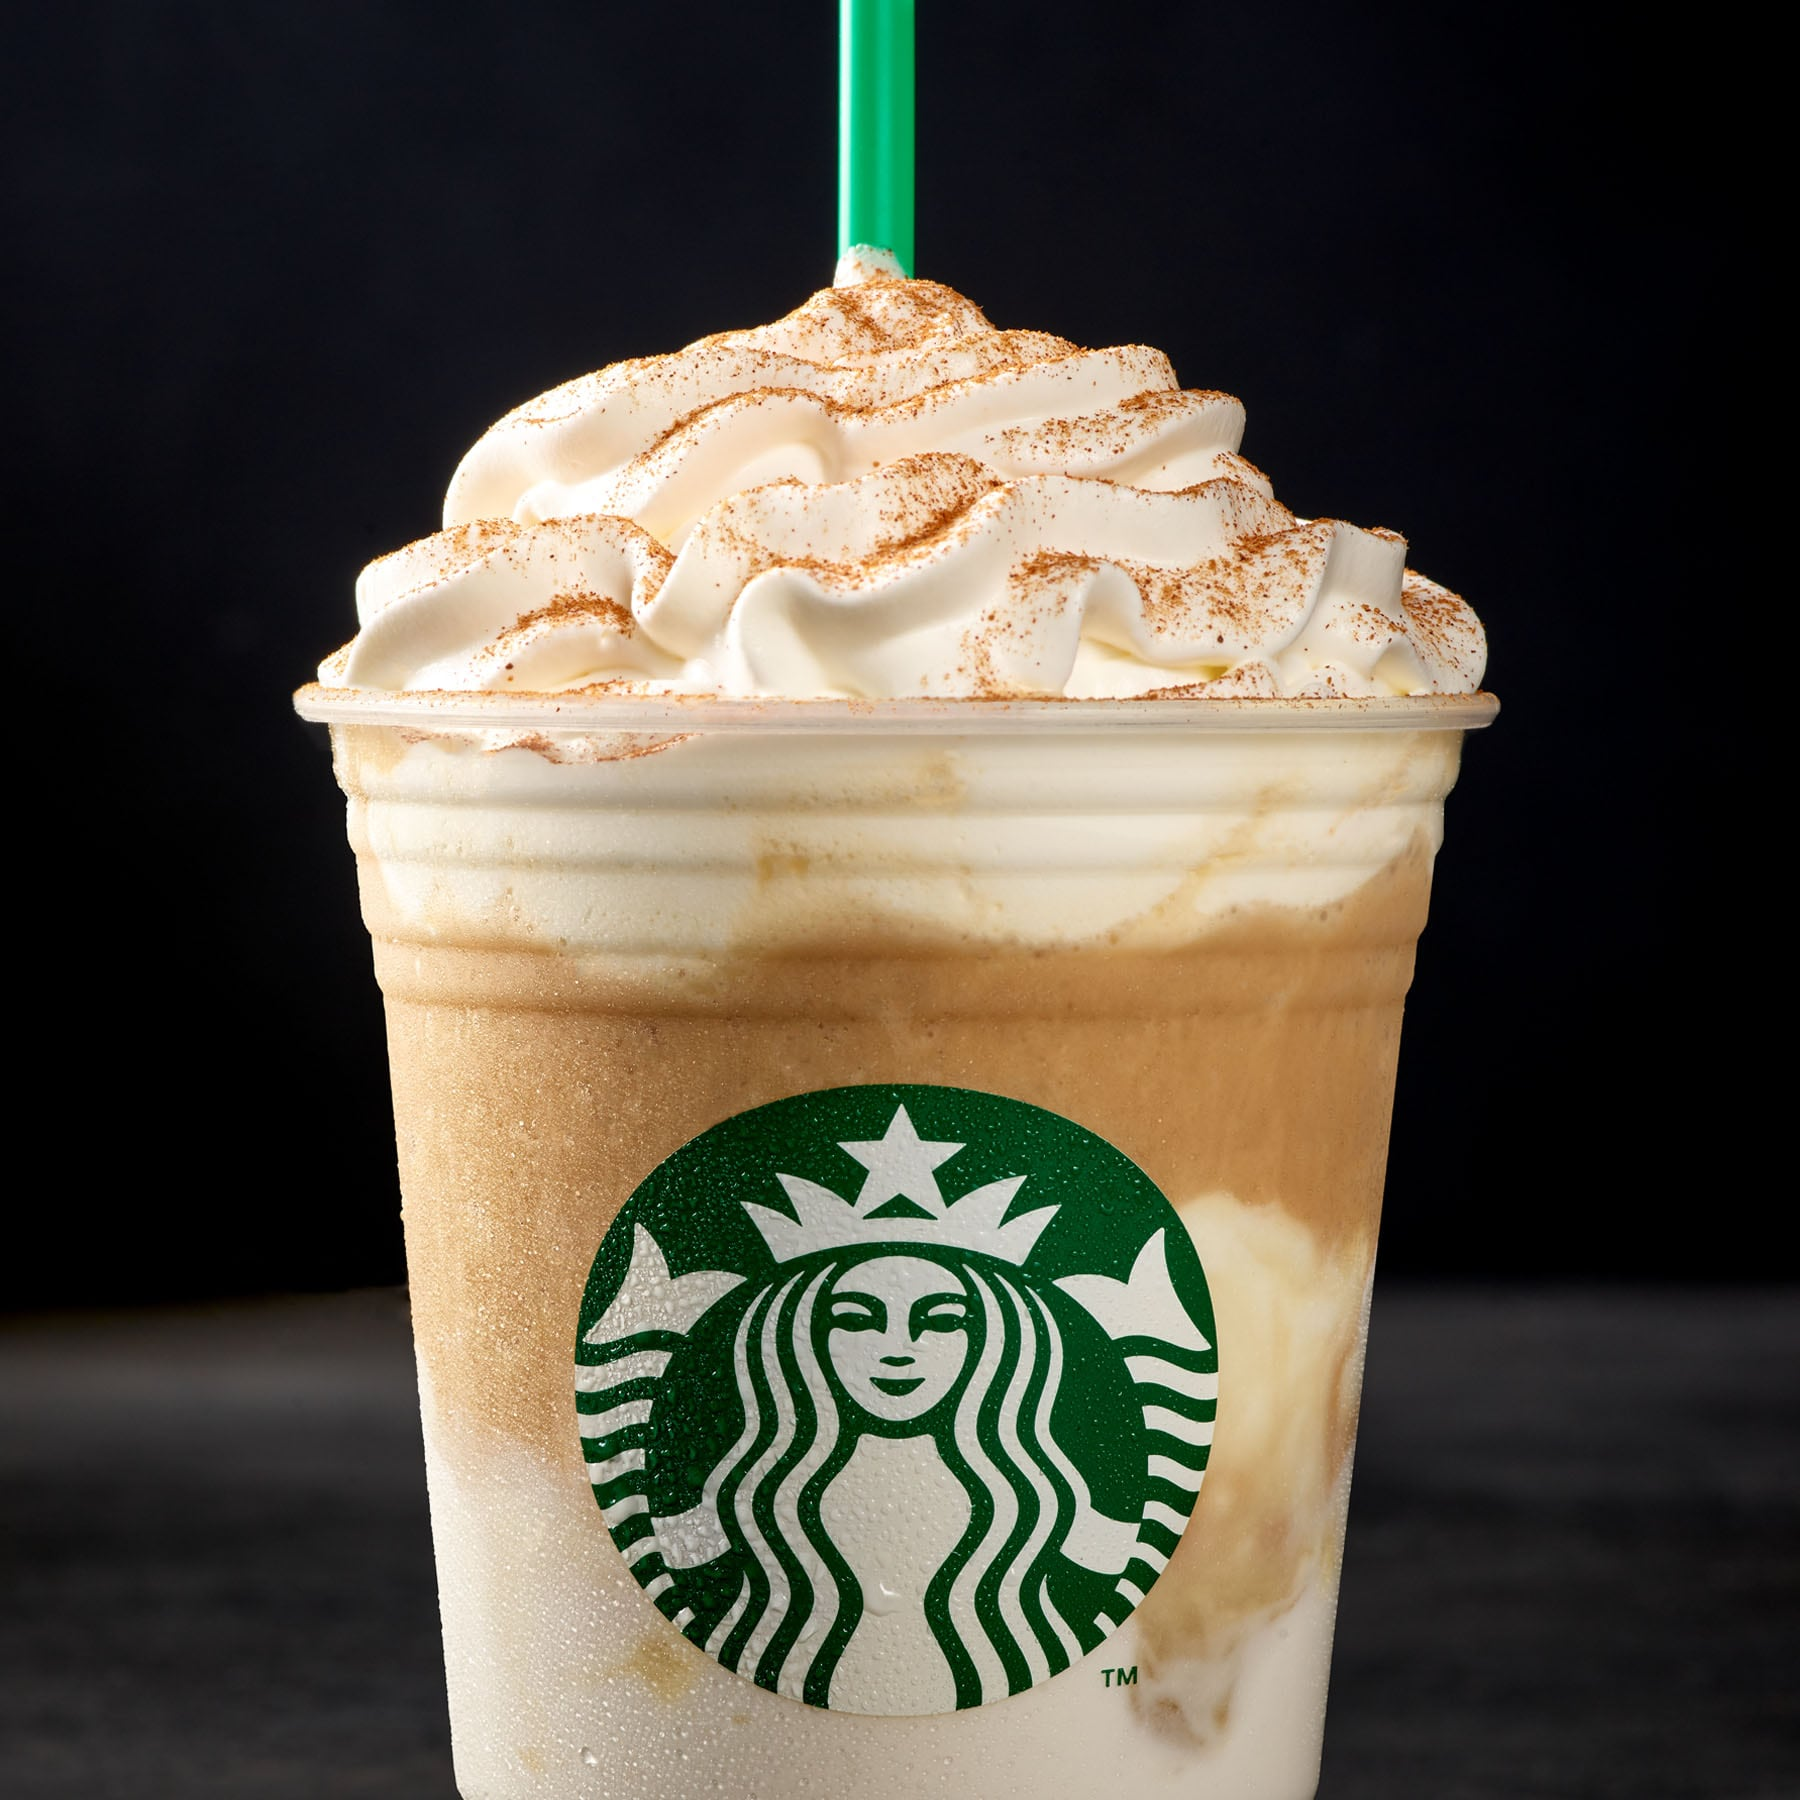 Like your frappuccino? It now takes 25 more stars (was 125 - now 150) to get a free Frappuccino!